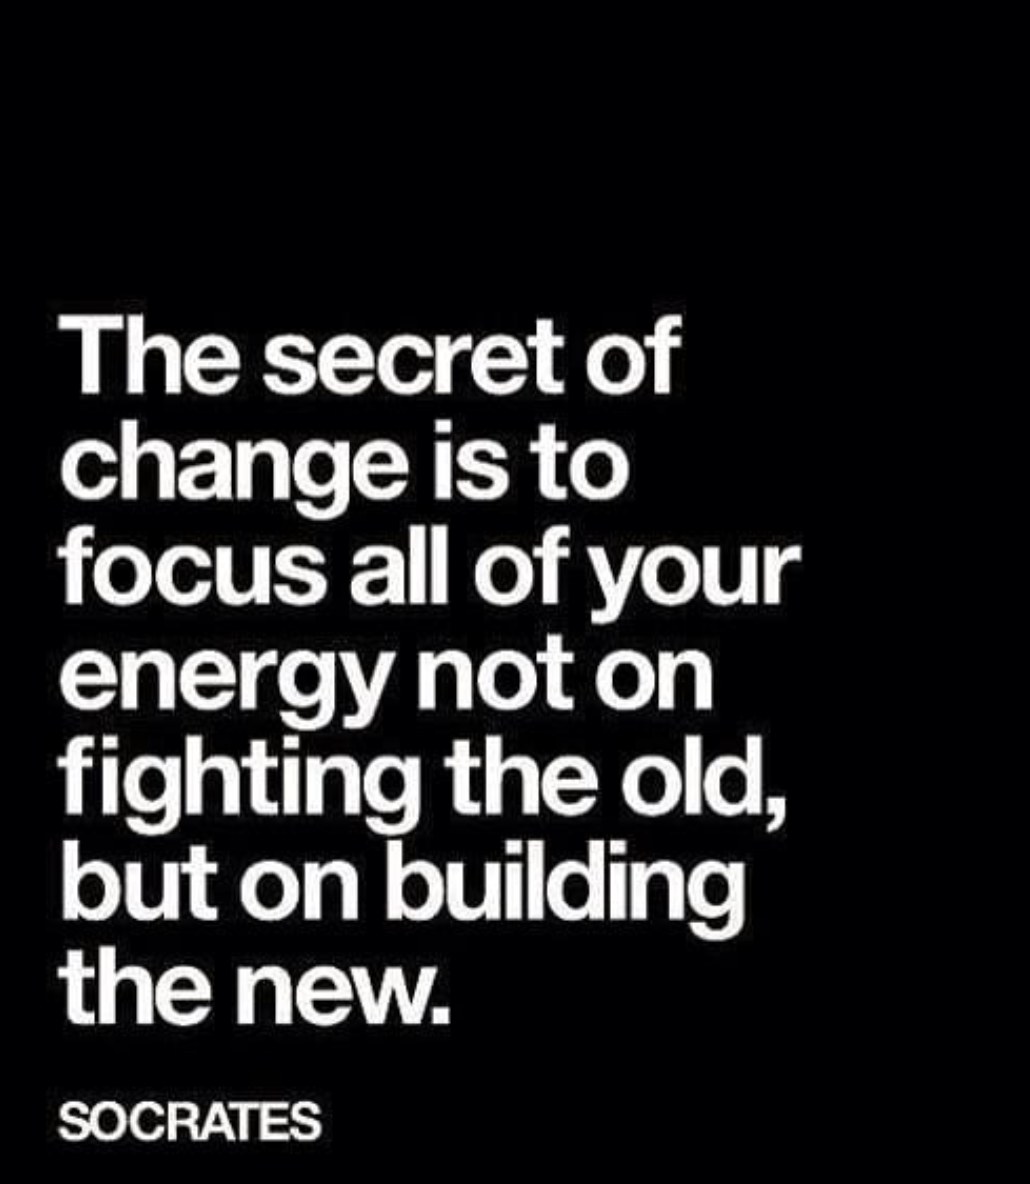 [Image] The secret of change is to focus all of your energy not on fighting the old, but on building the new